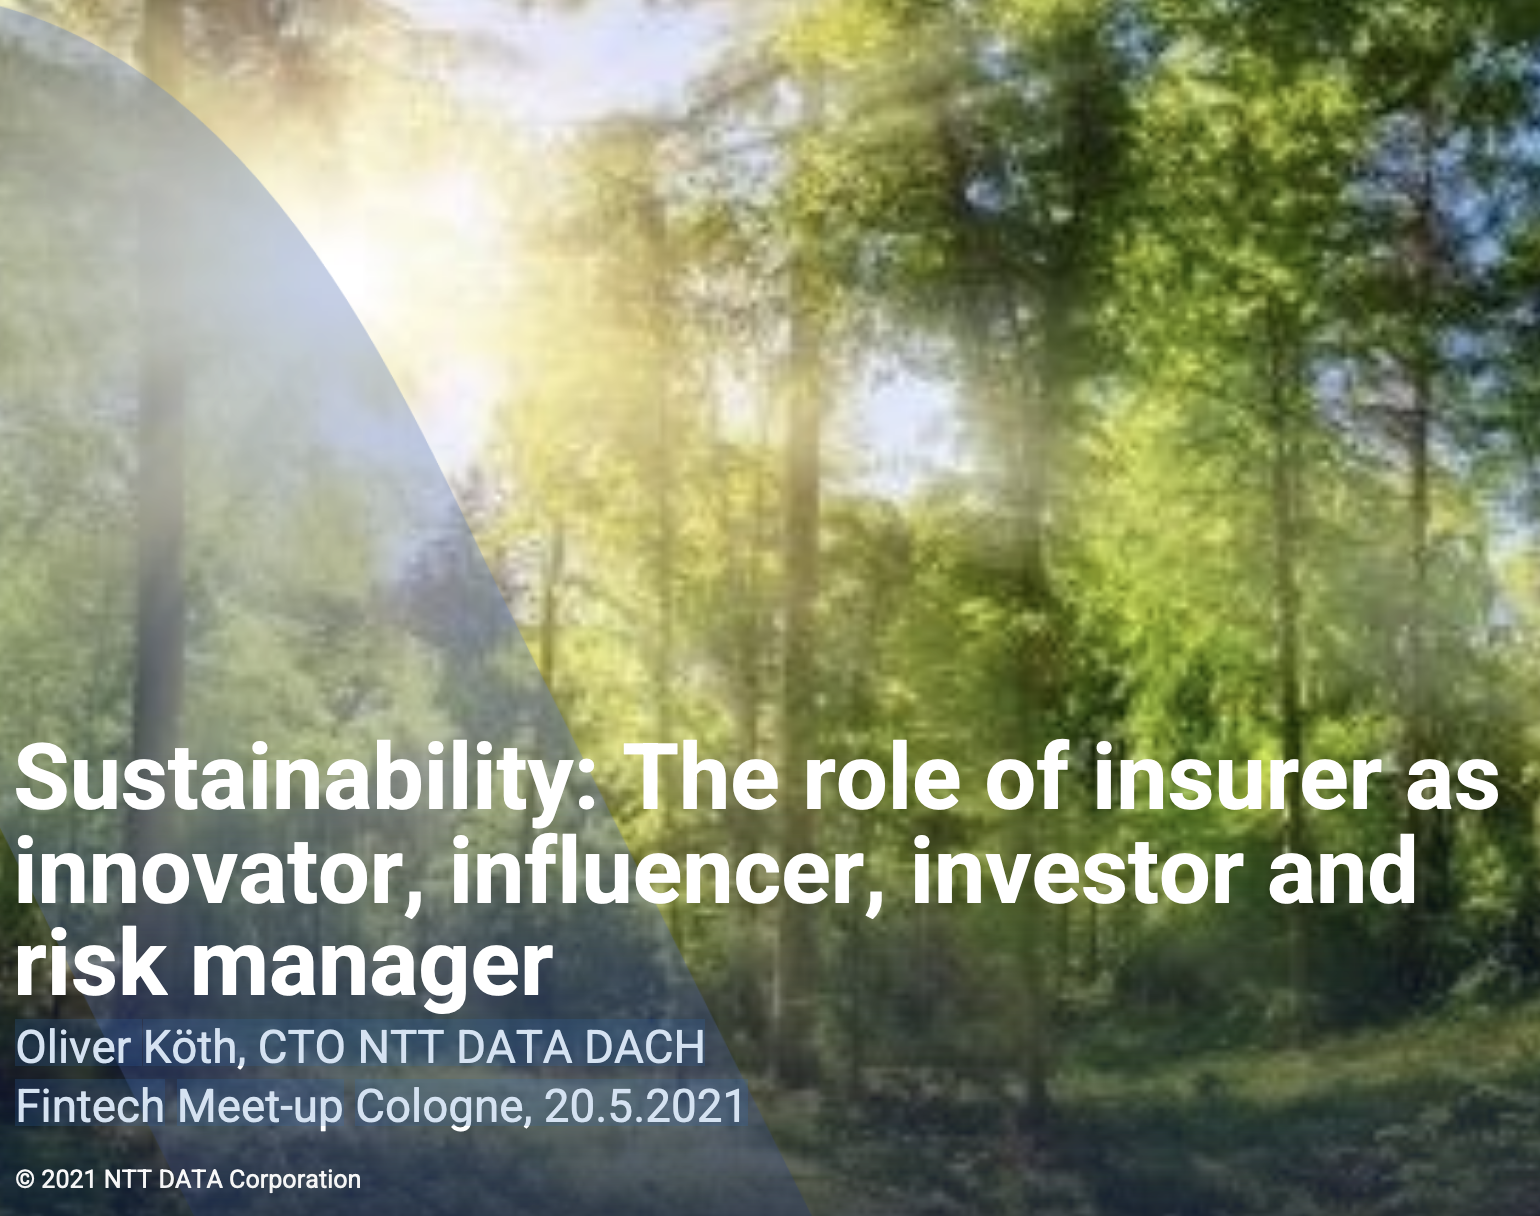 Sustainability: The role of insurer as innovator, influencer, investor and risk manager